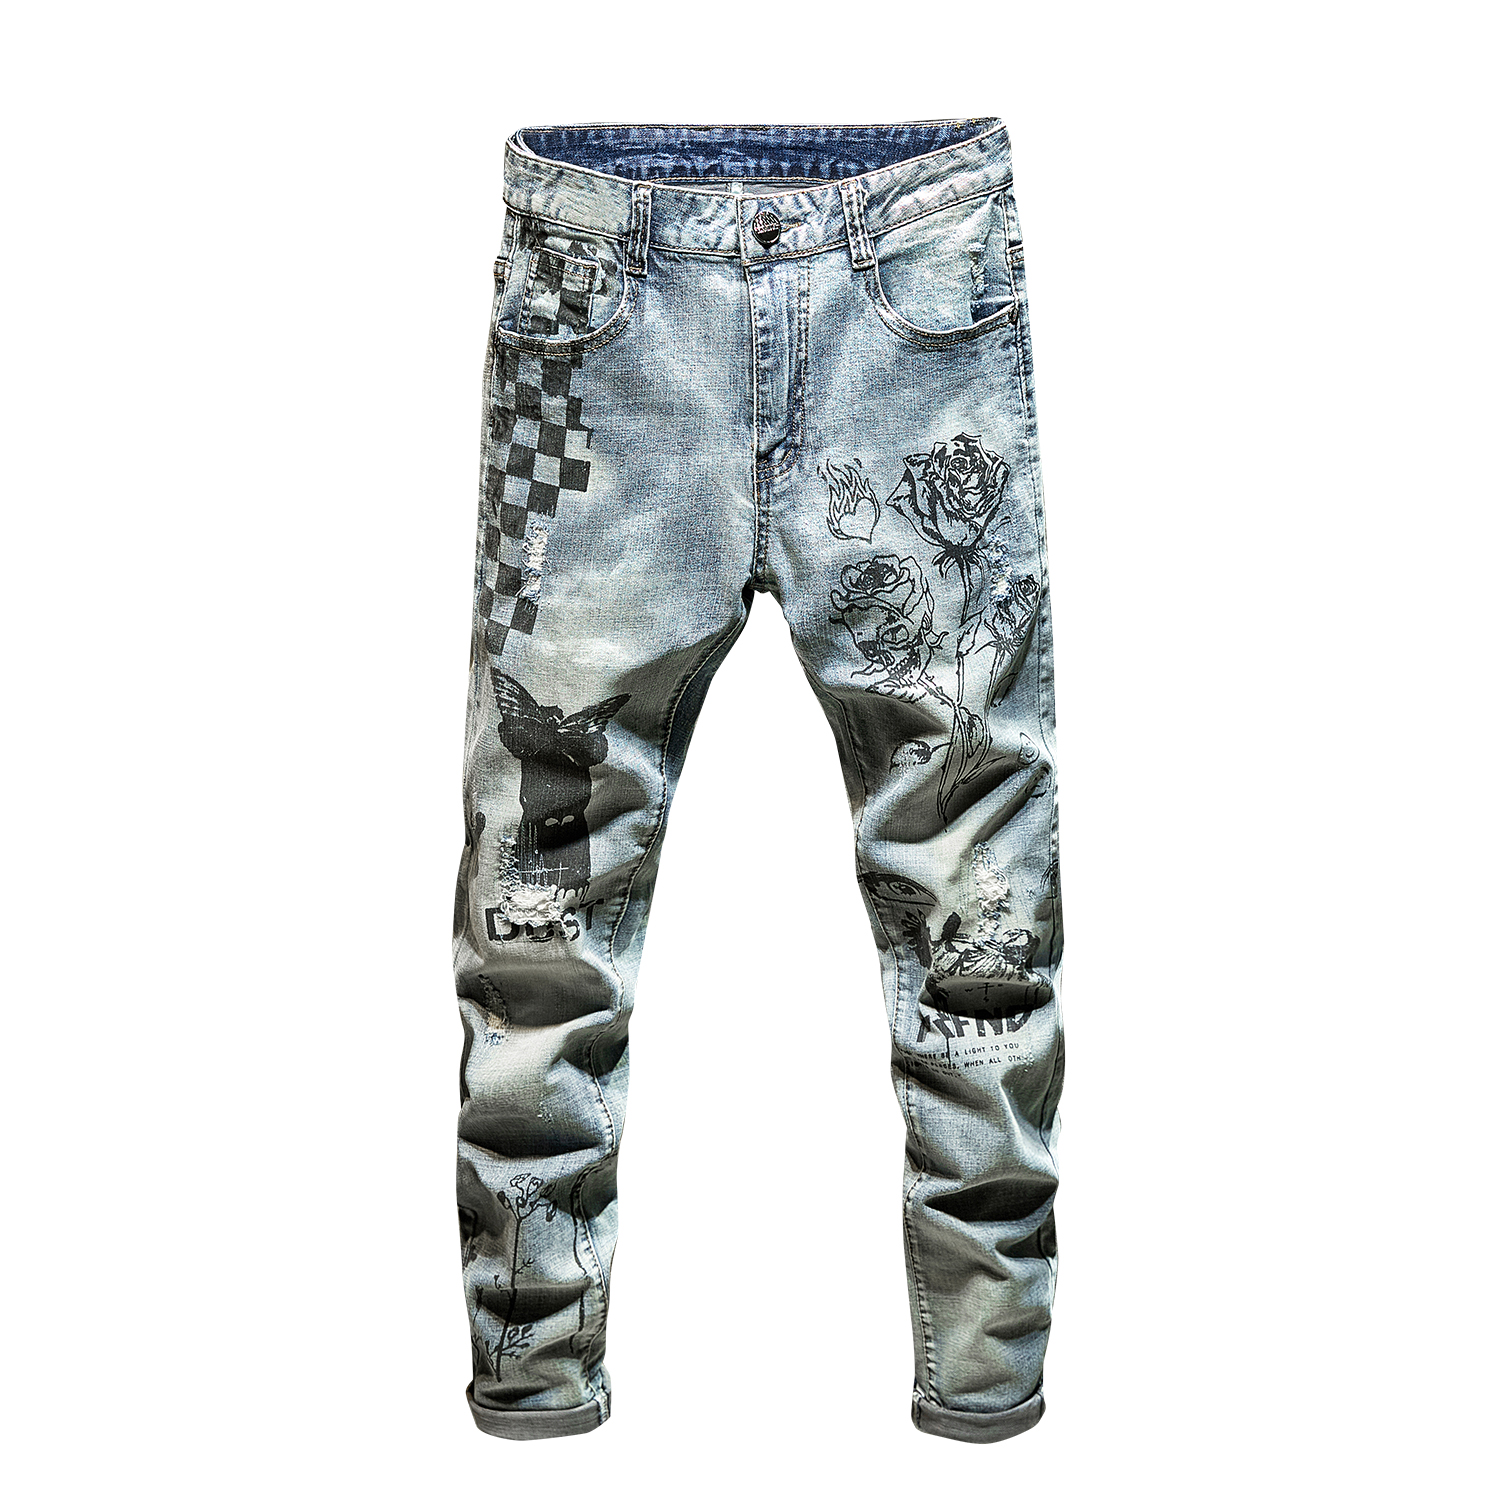 POVOTE 2020 New Spring And Autumn Fashion Brand Men's Jeans Retro Fashion Slim Print Pants Hip Hop Street Jeans